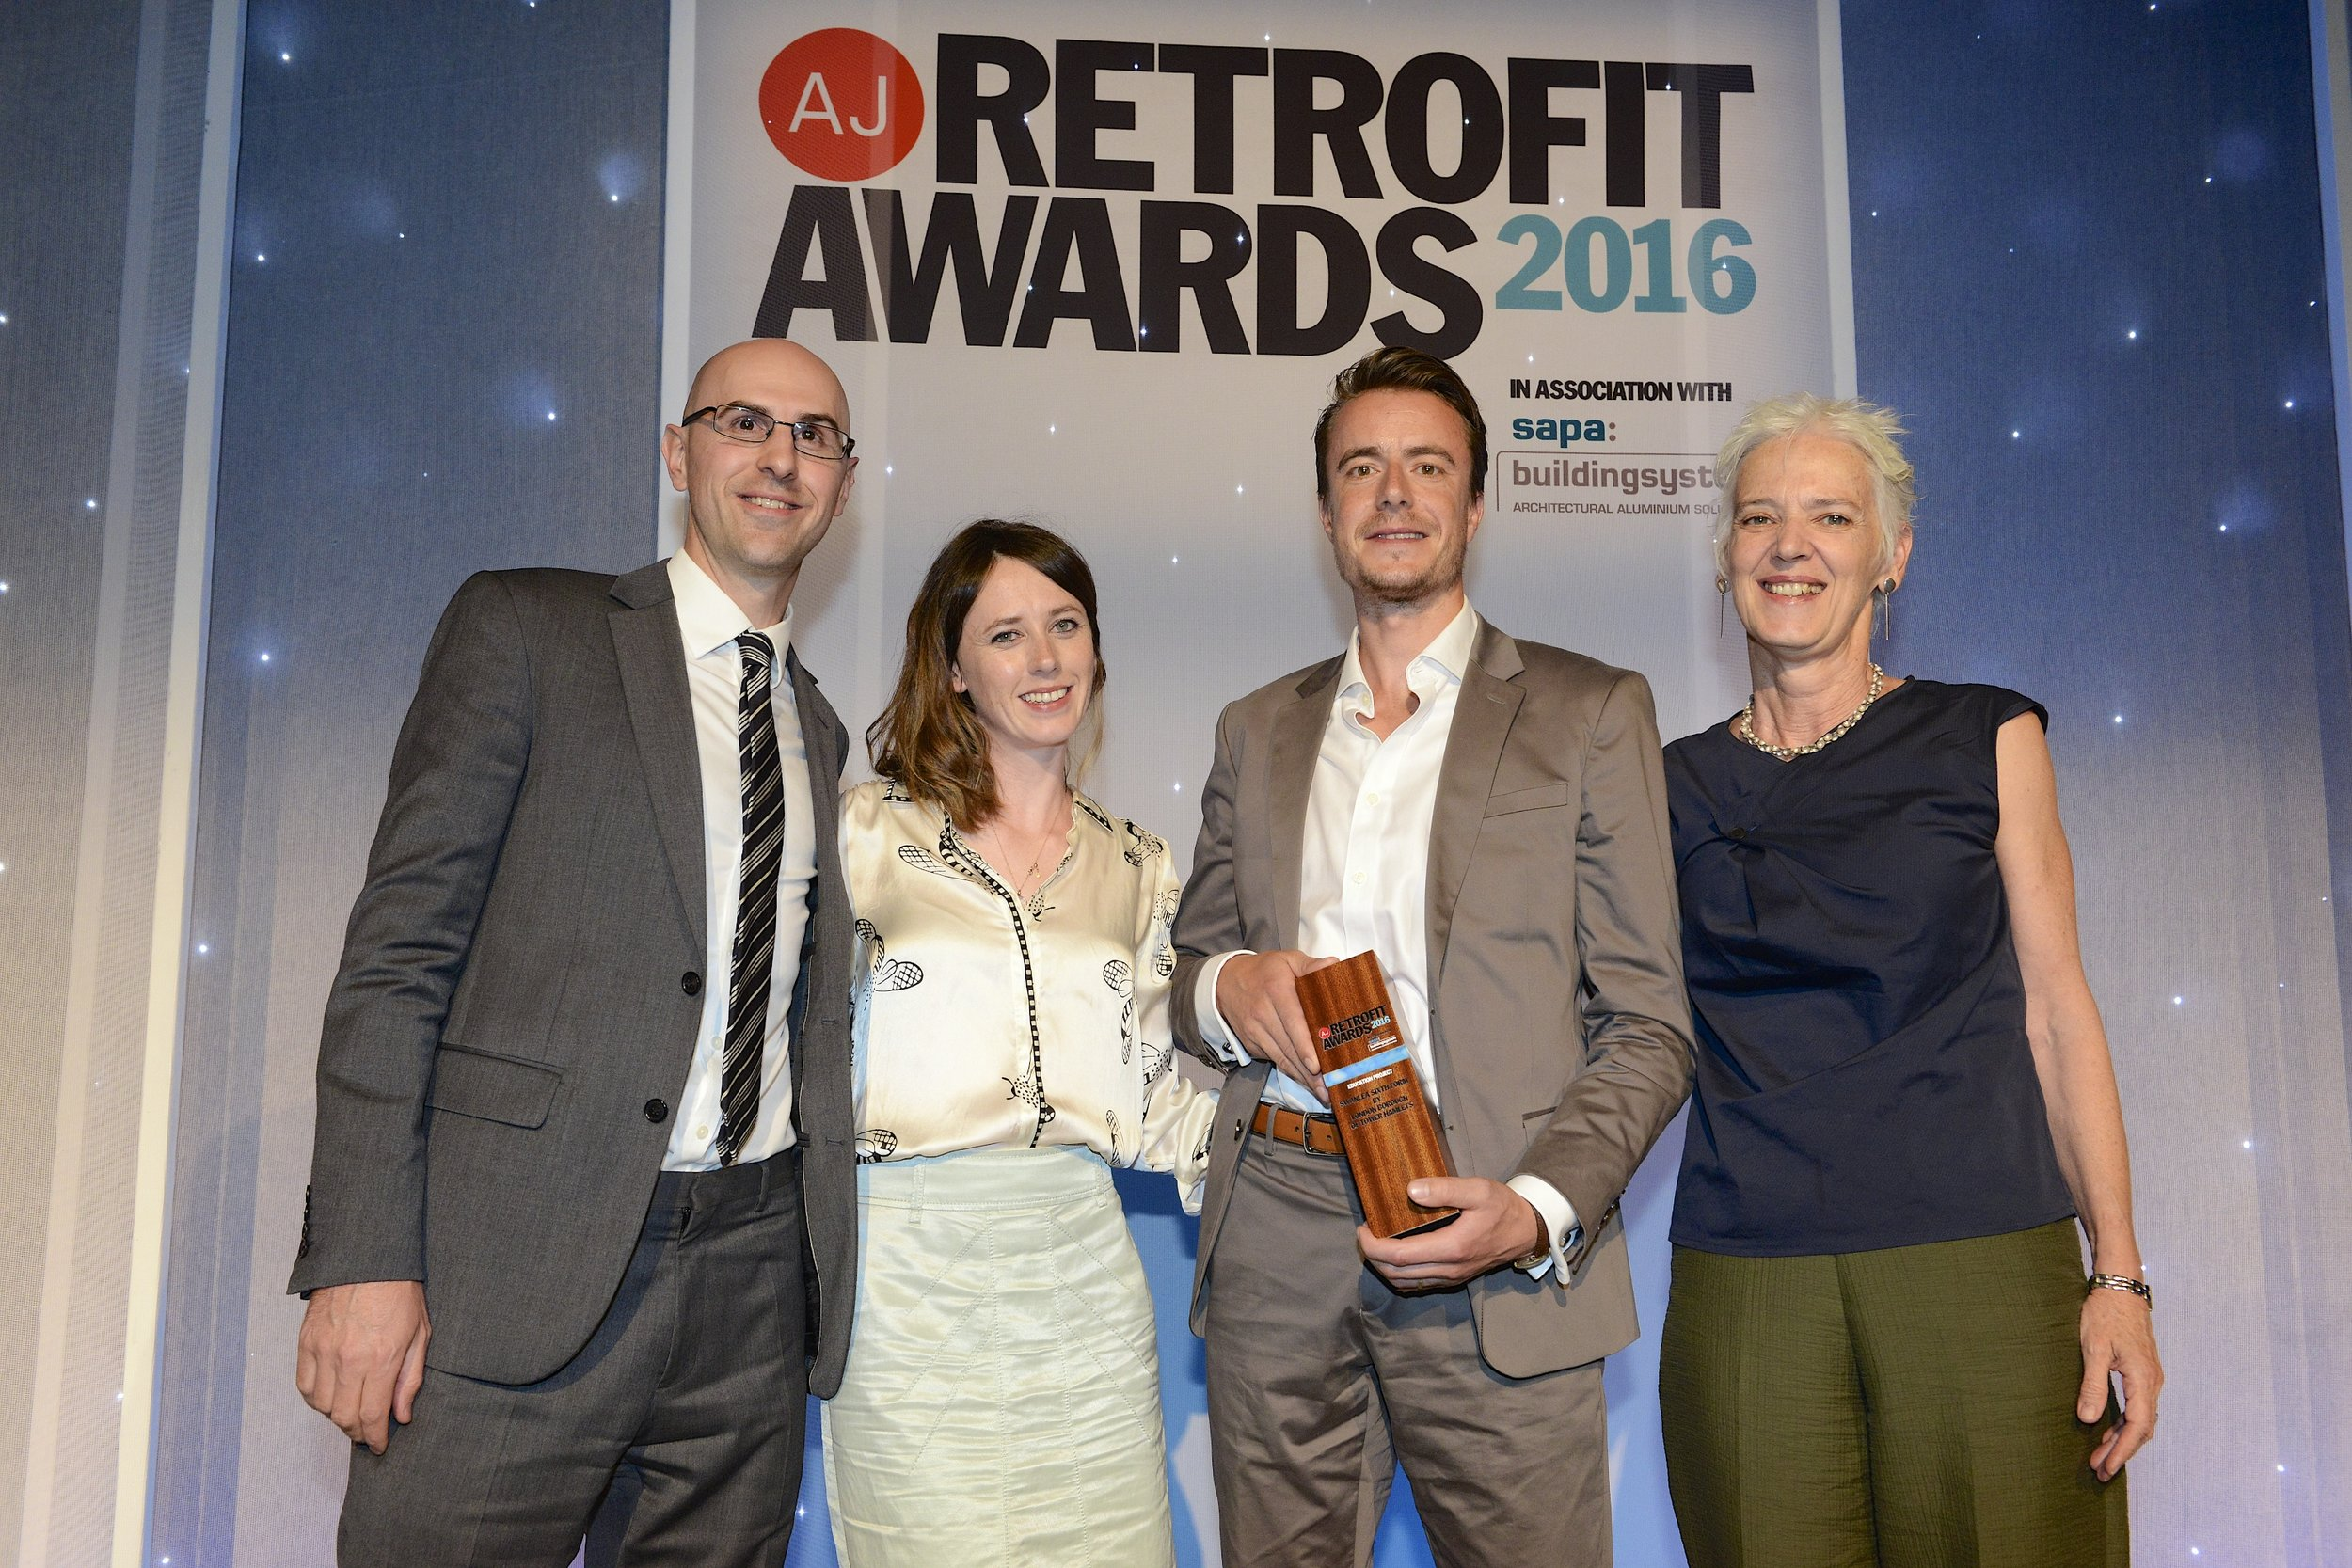 September 2016   Delighted to announce that our Swanlea scheme designed for London Borough of Tower Hamlets won the Architect's Journal Retrofit for Education Award. Hugely thrilled, particularly considering the competition!